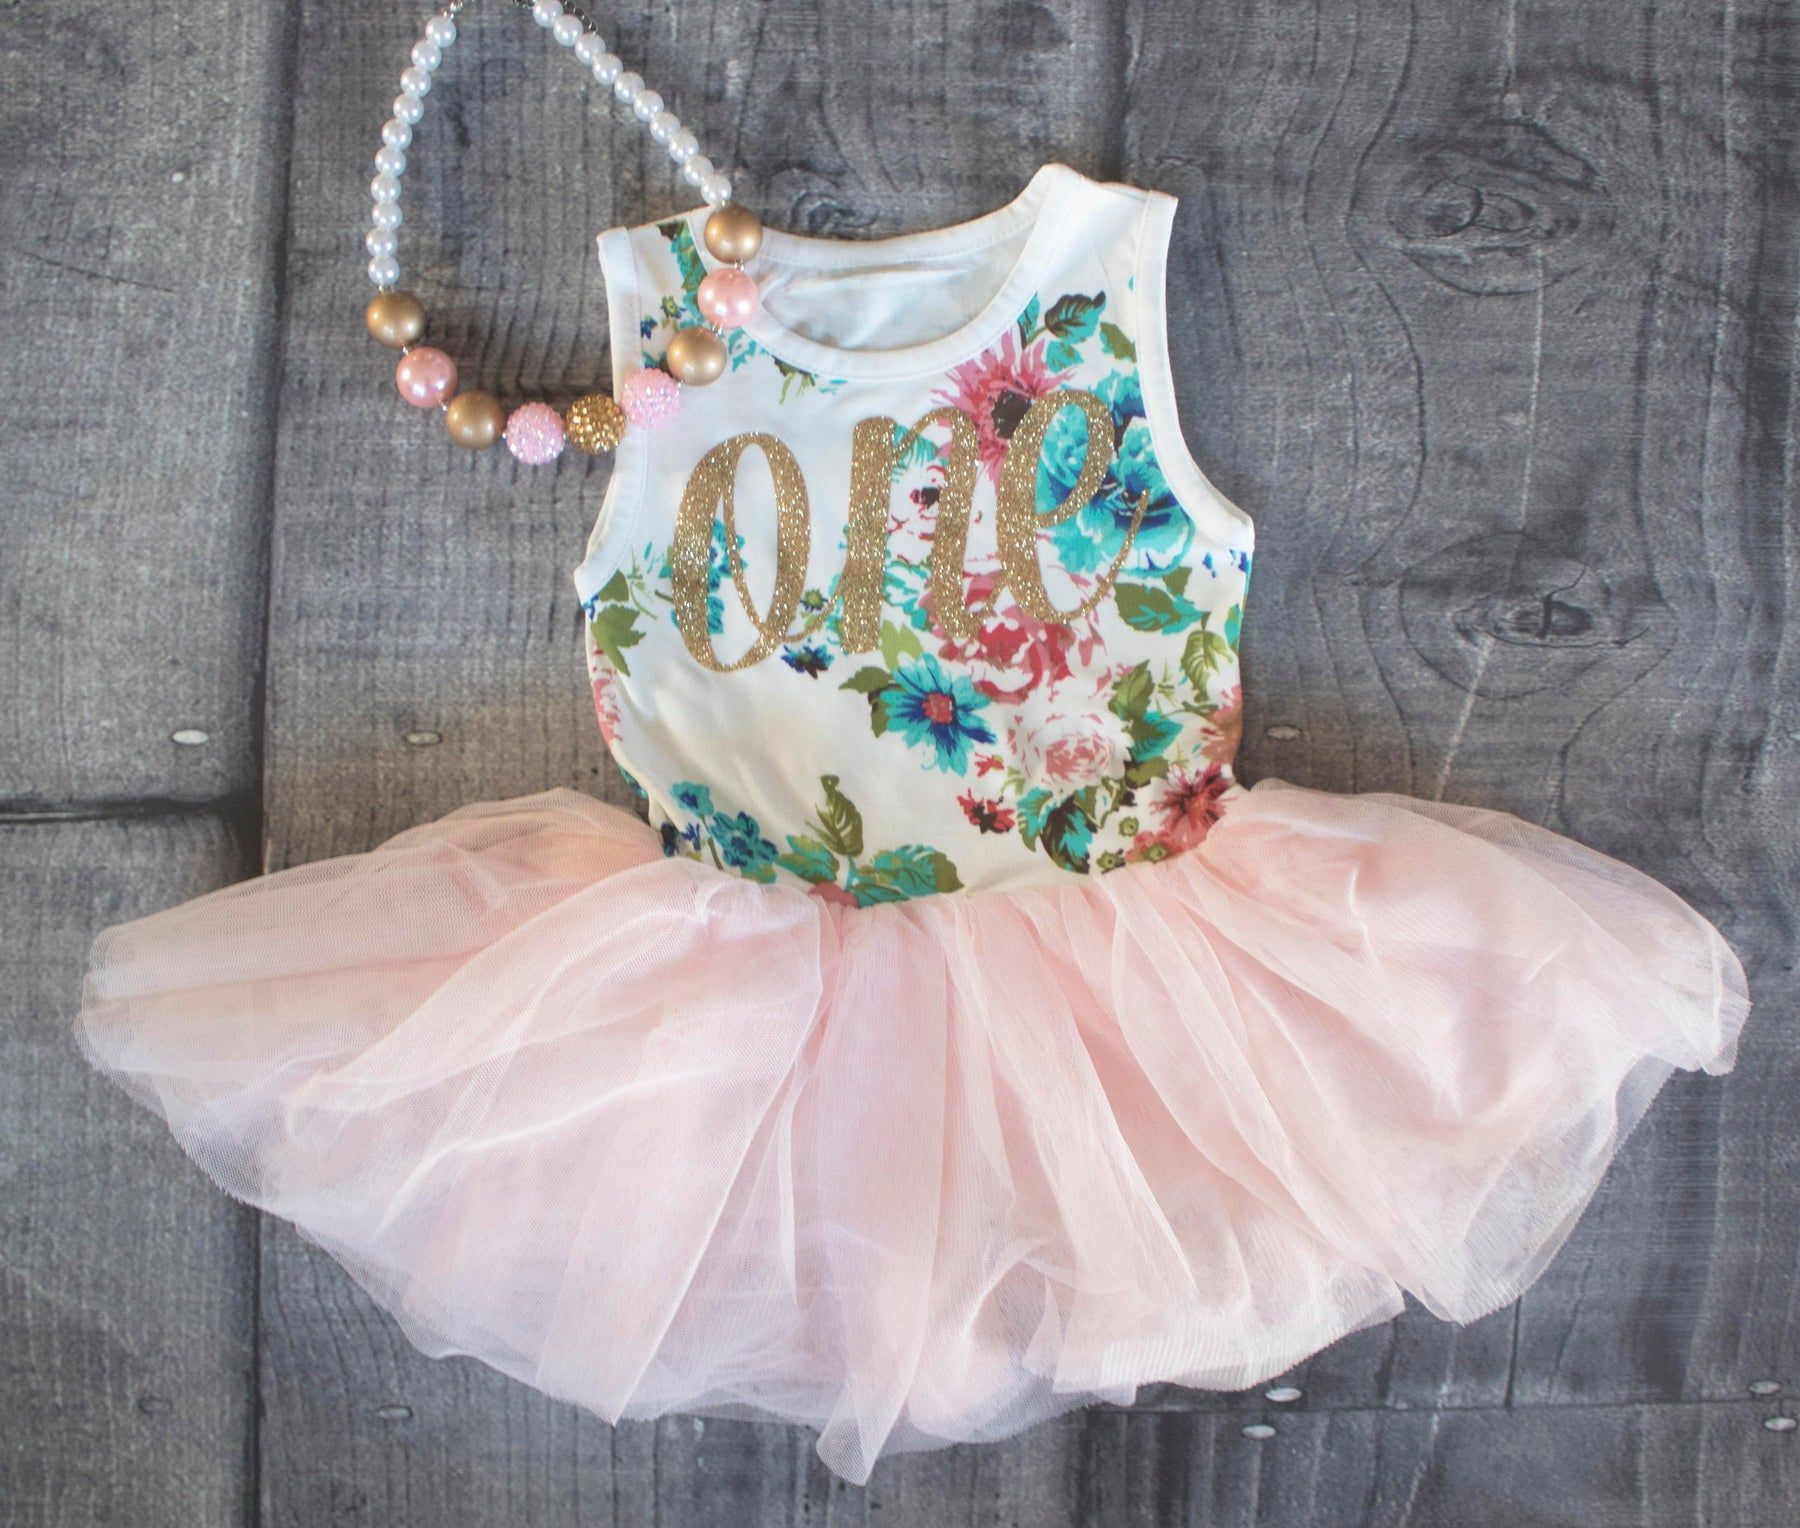 First Birthday Outfit, First Birthday Dress, Pink and Gold Birthday Outfit, Floral First Birthday Dress, 1st Birthday Outfit, First Birthday